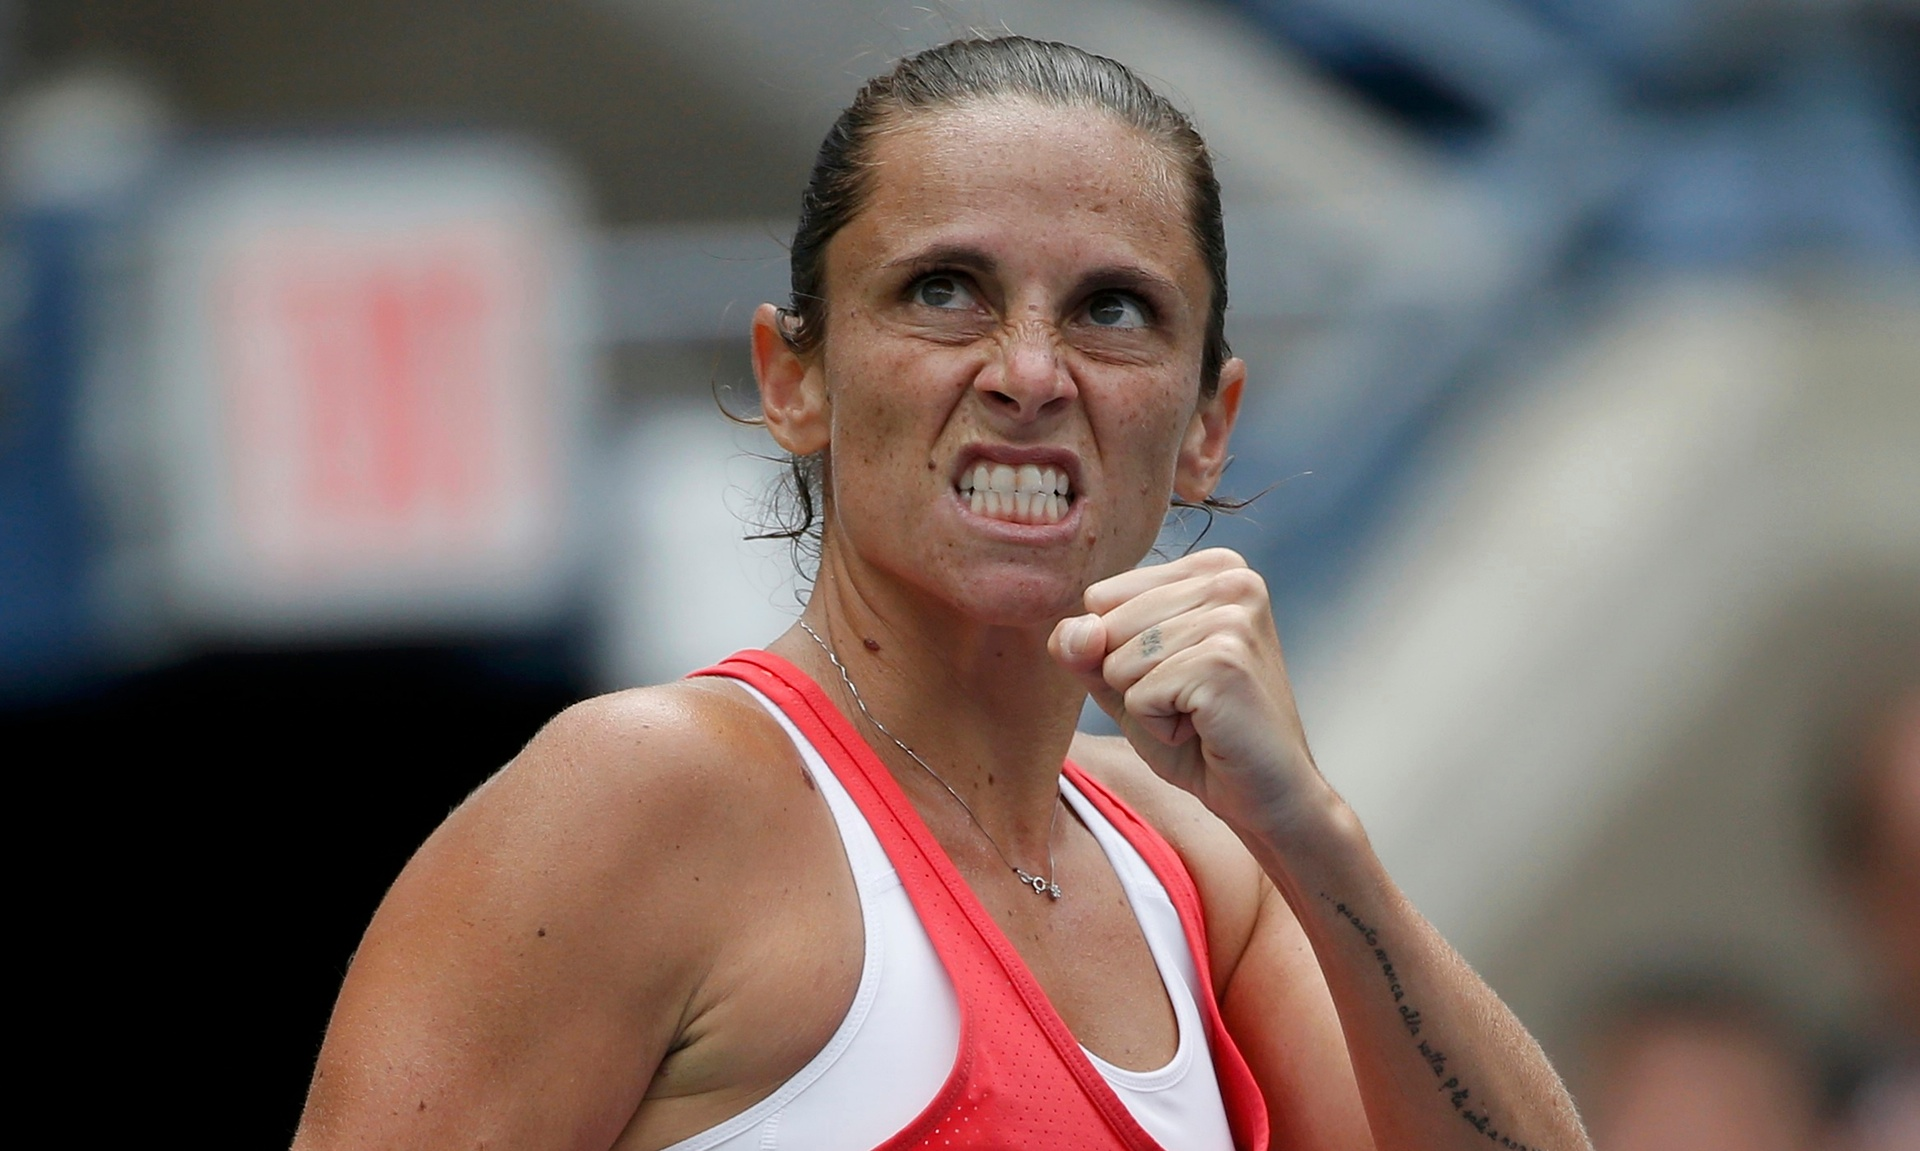 Roberta Vinci upsets Serena Williams at US Open semifinal 9 11 2015